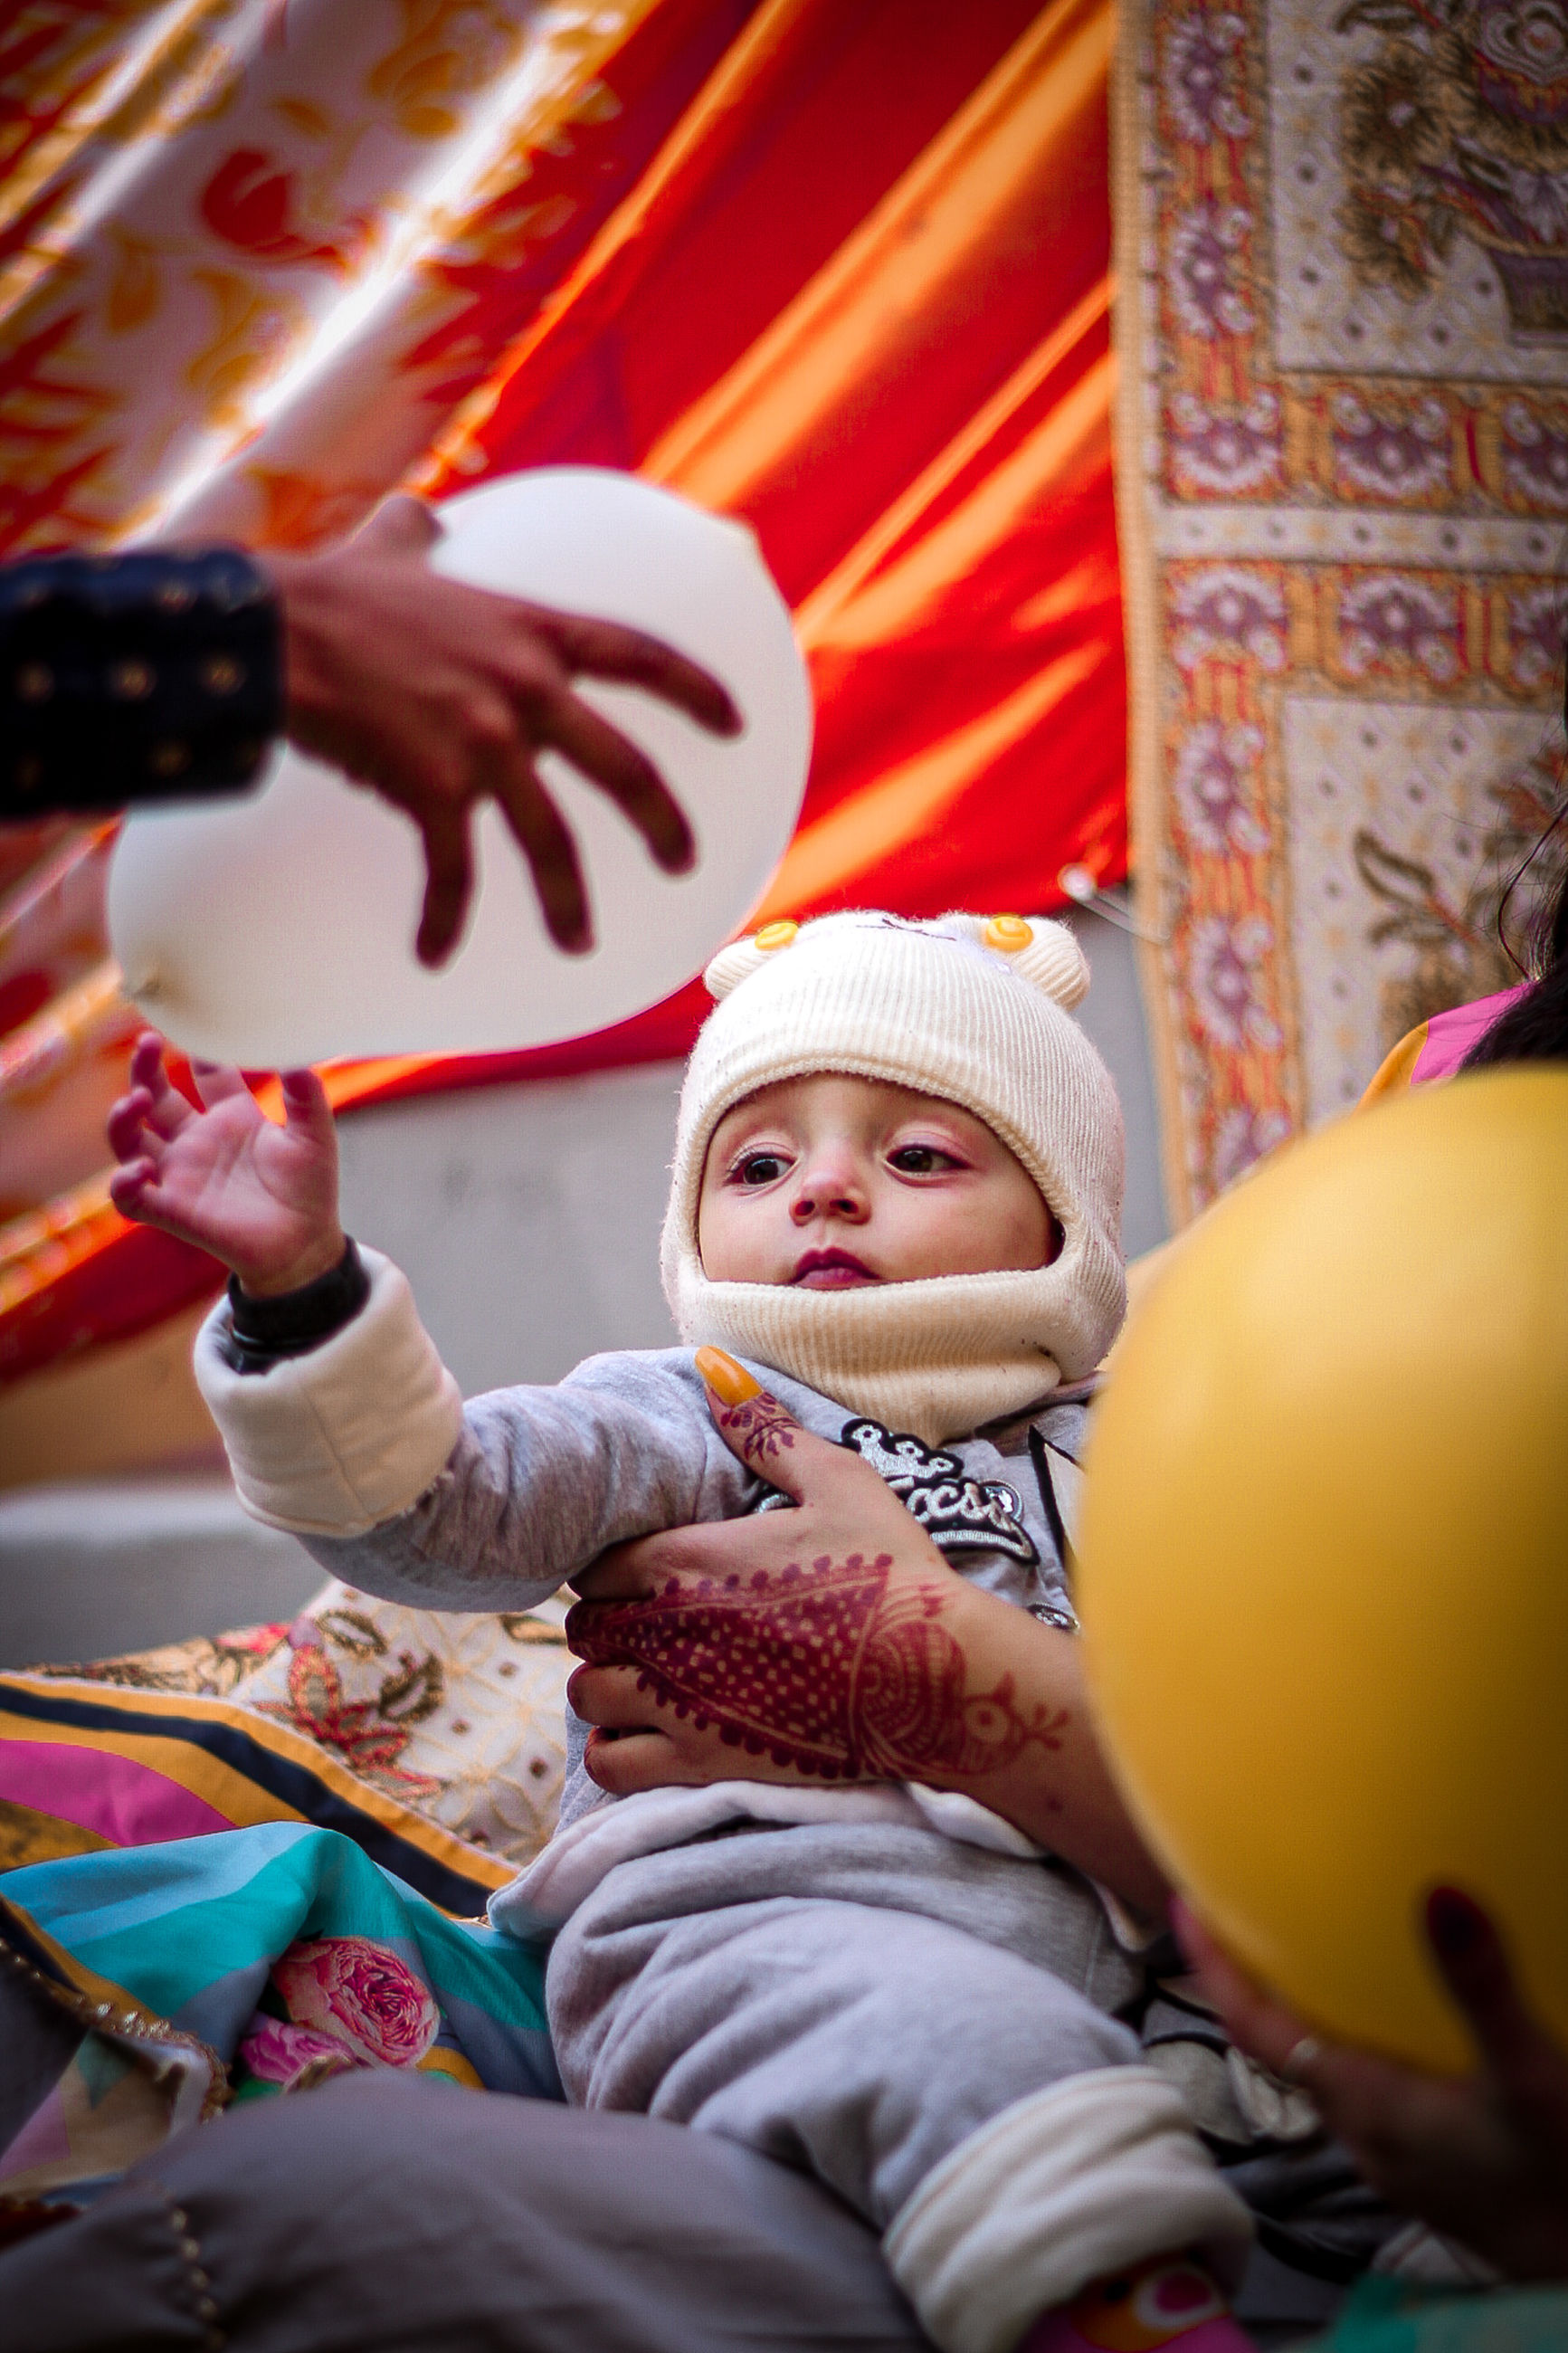 child, childhood, baby, happiness, hat, clothing, smiling, emotion, toddler, men, adult, sitting, two people, celebration, women, female, family, fun, togetherness, holding, indoors, cute, positive emotion, enjoyment, cheerful, portrait, lifestyles, person, holiday, innocence, selective focus, parent, event